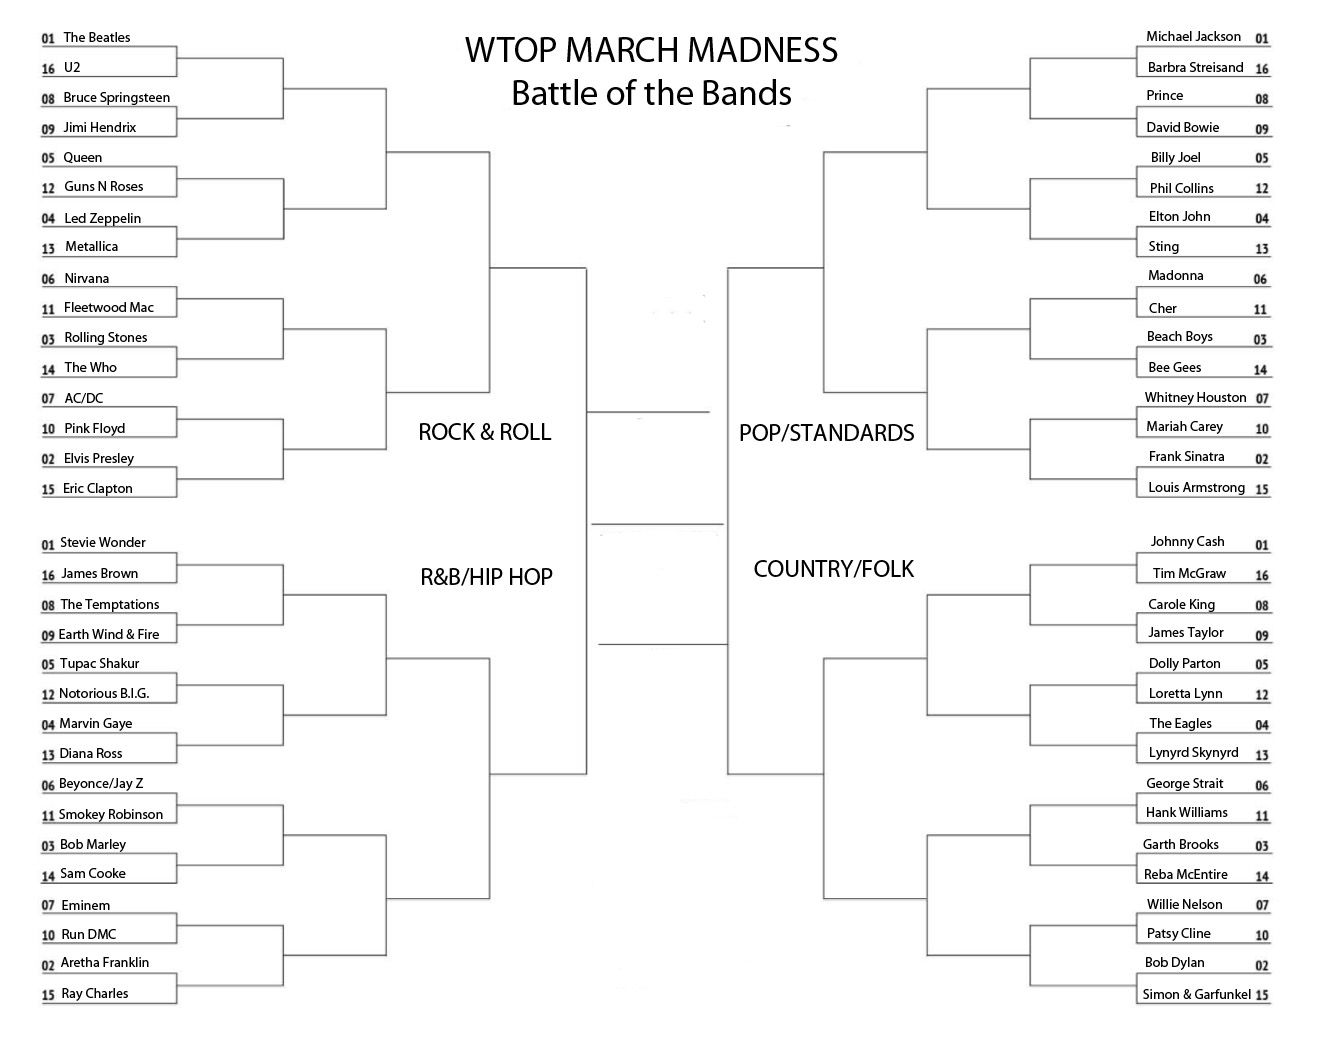 March Madness: Battle of the Bands